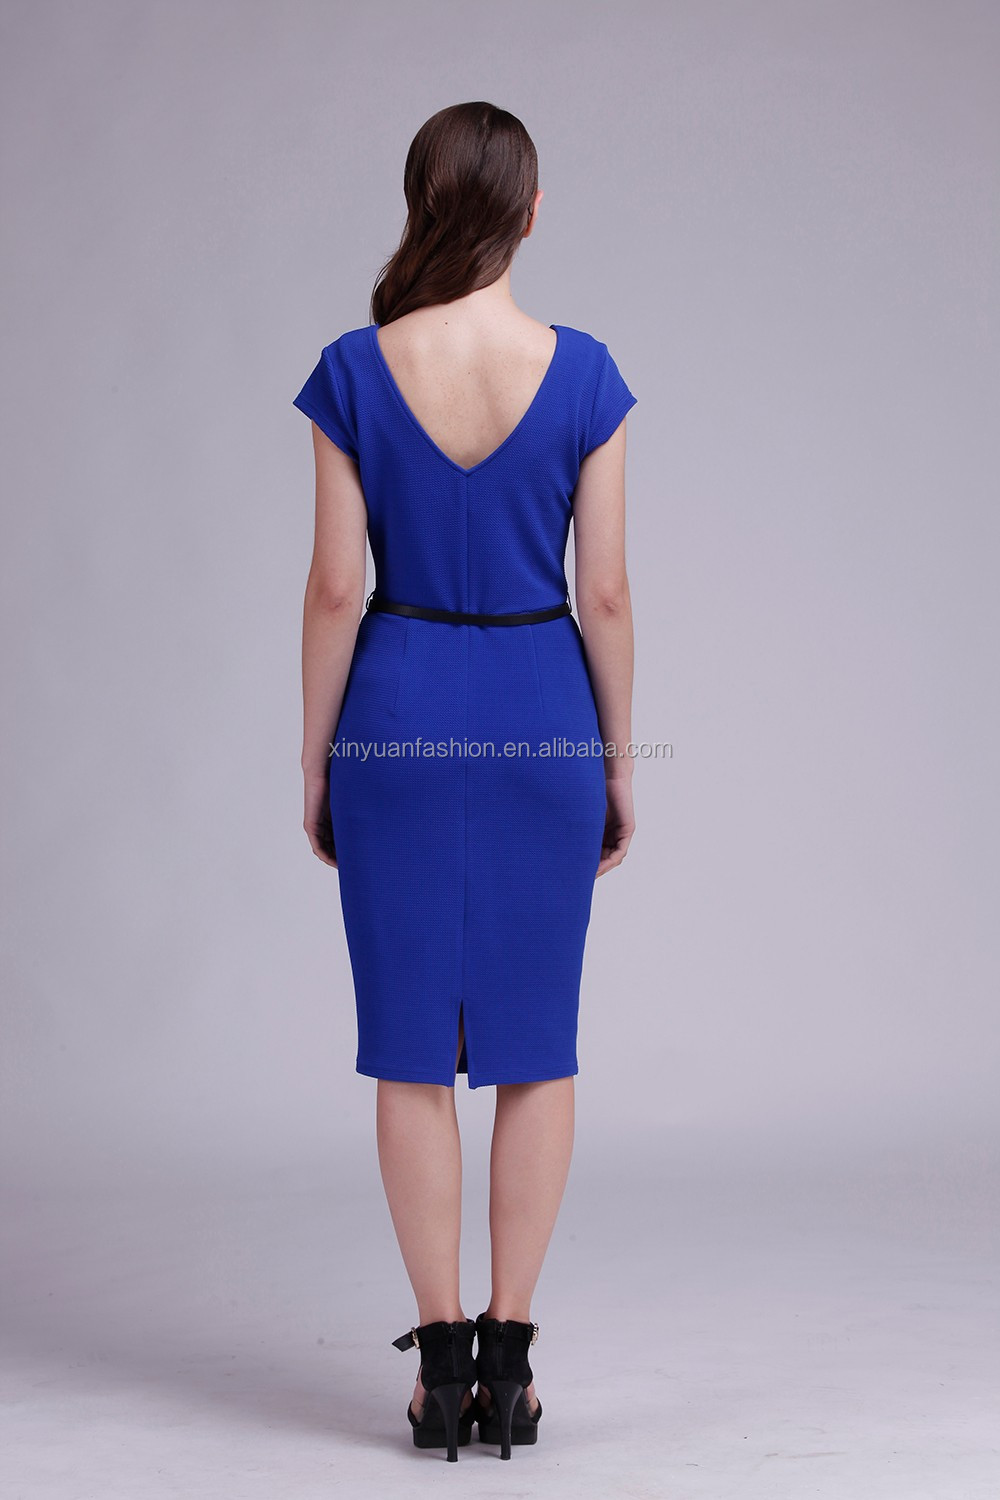 Woman dress royal sky dresses elegant knee length woman clothes